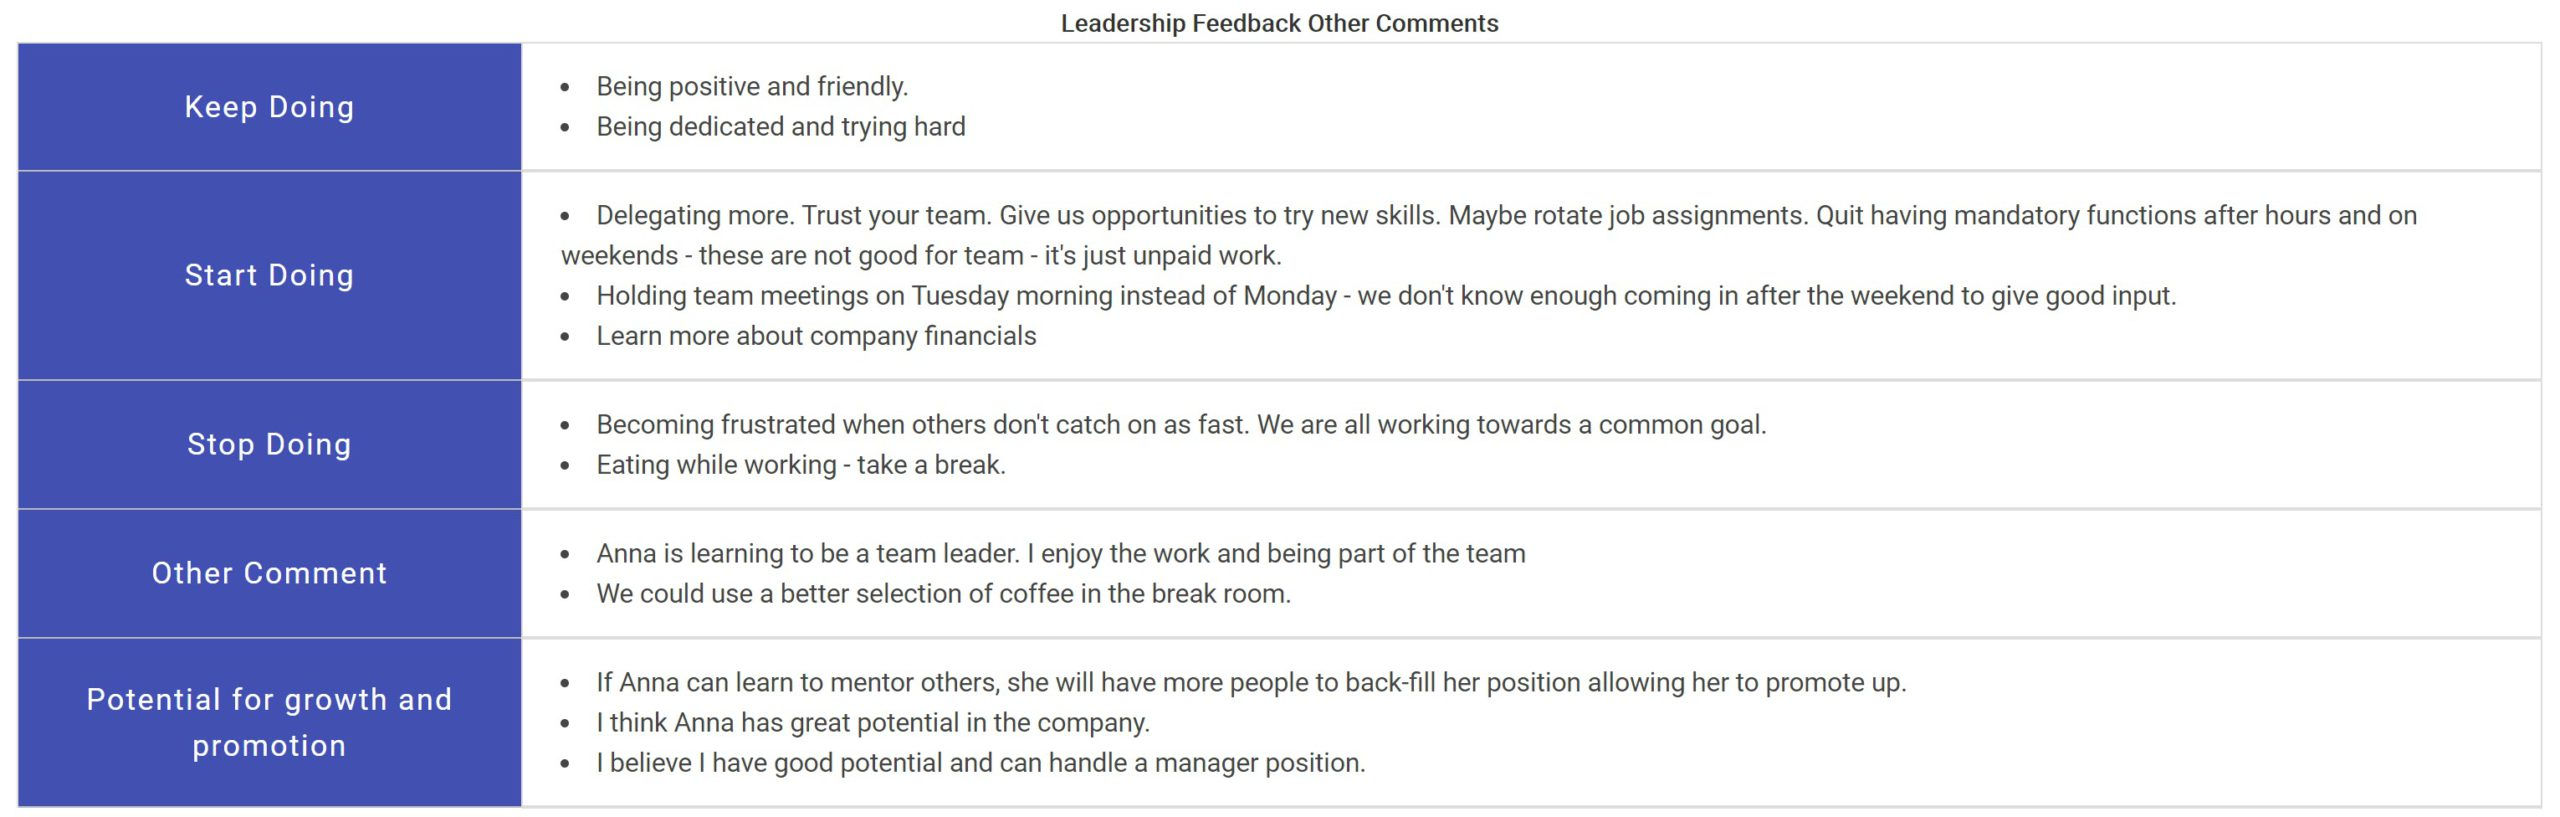 Free text portion of leadership feedback report